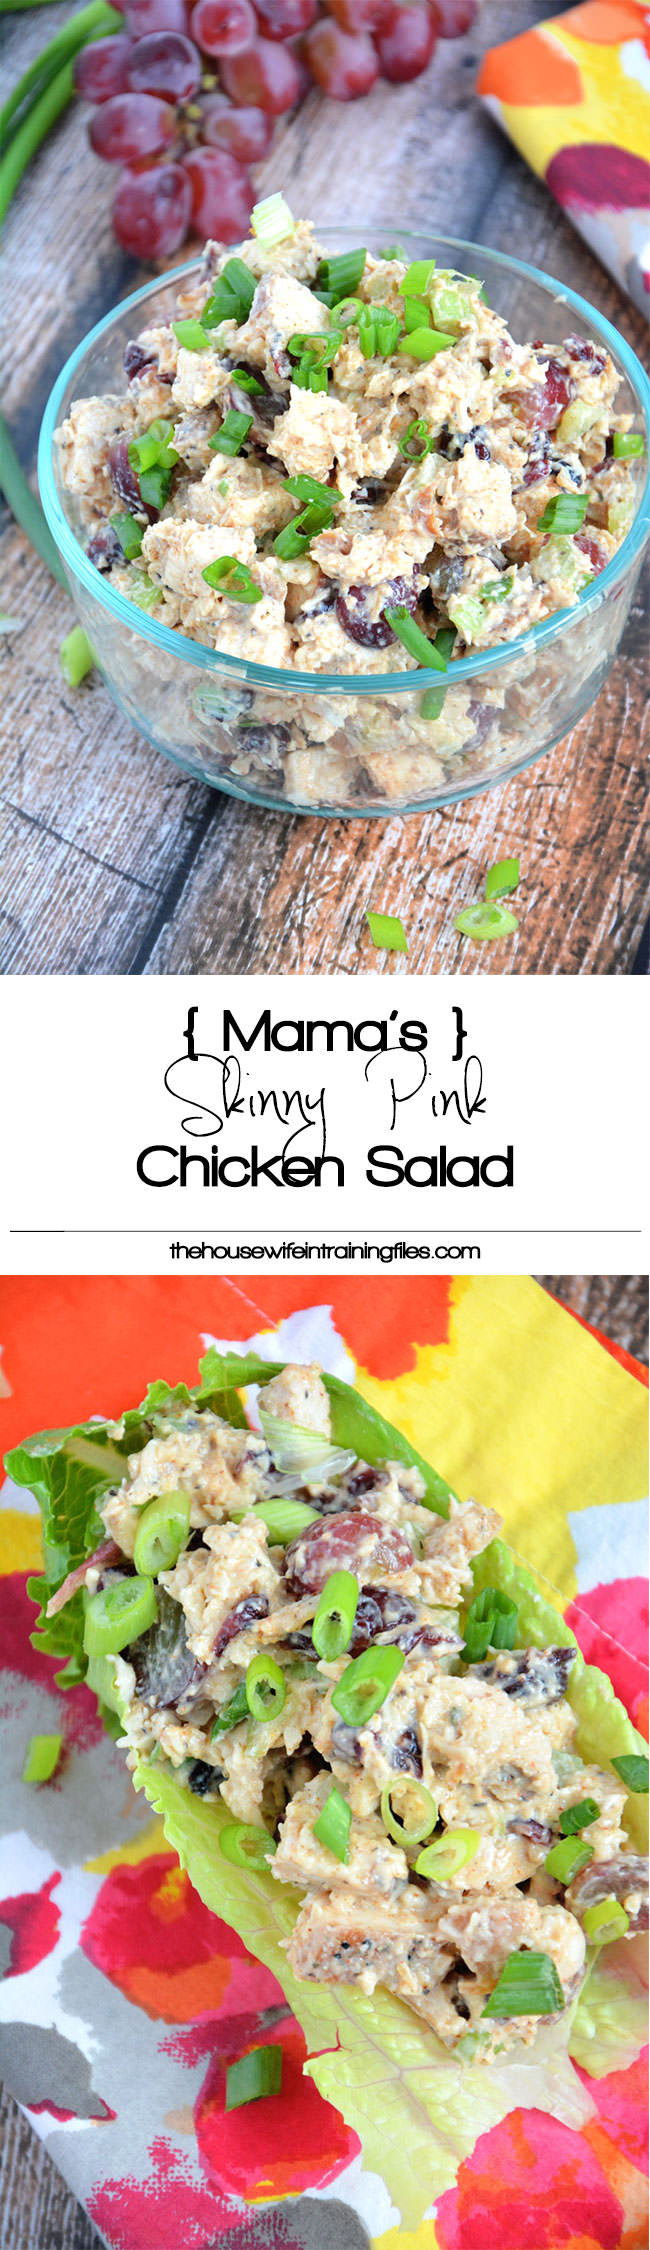 A sweet and smoky chicken salad, made lighter with greek yogurt, cranberries, celery and grapes that pairs wonderful with a croissant, whole grain wrap or with lettuce for a guilt free meal!